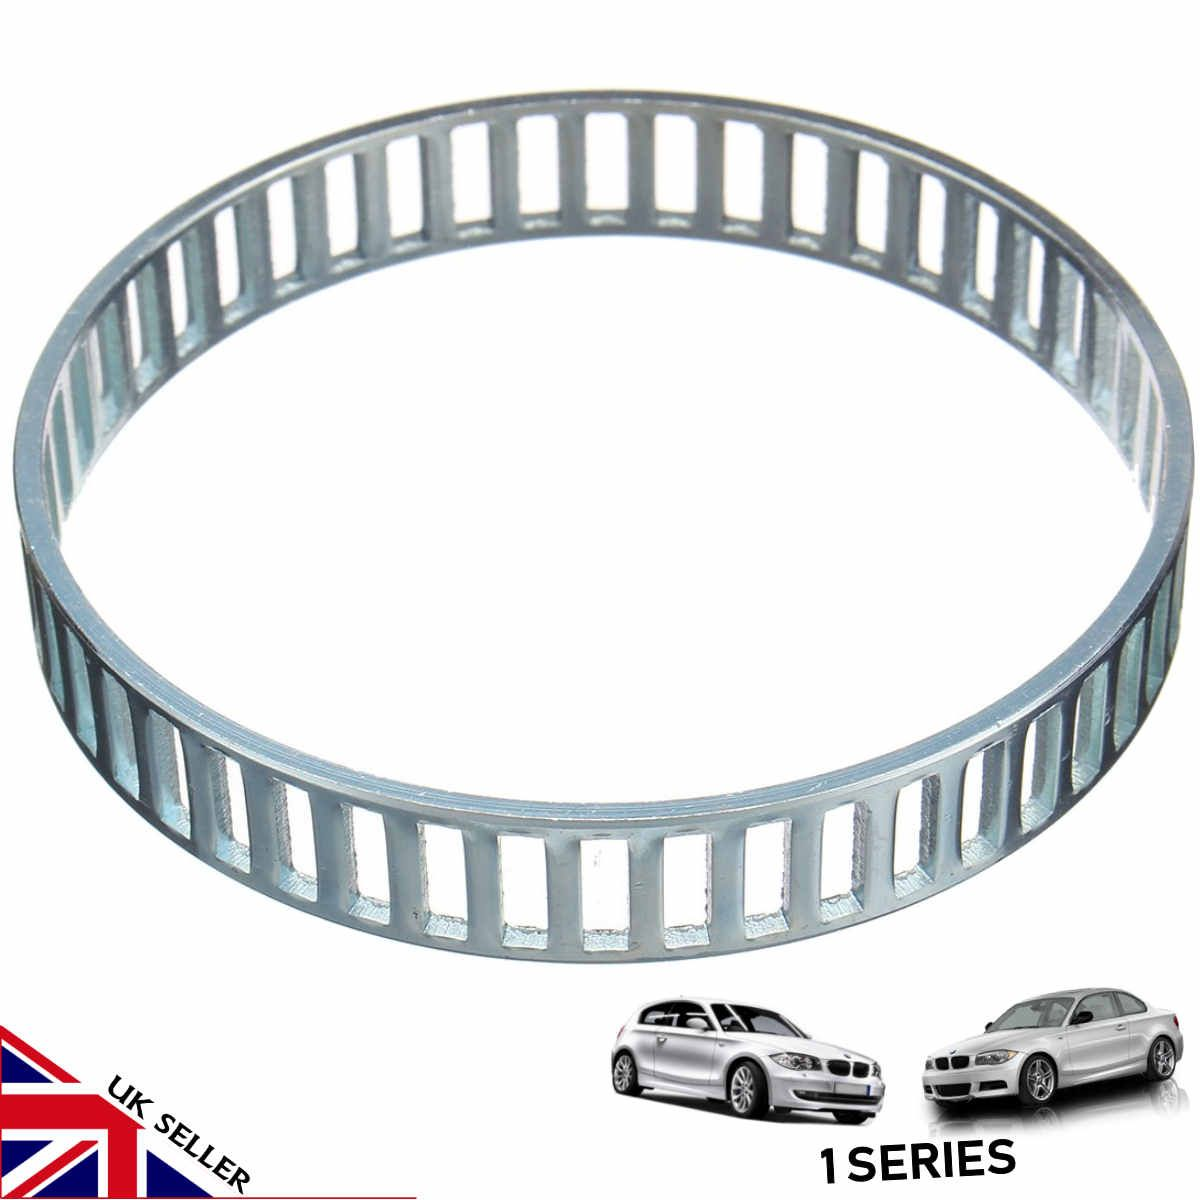 BMW 1 SERIES DRIVE SHAFT ABS RING E81,E82,E87,E88 ABS RELUCTOR RING Brand New